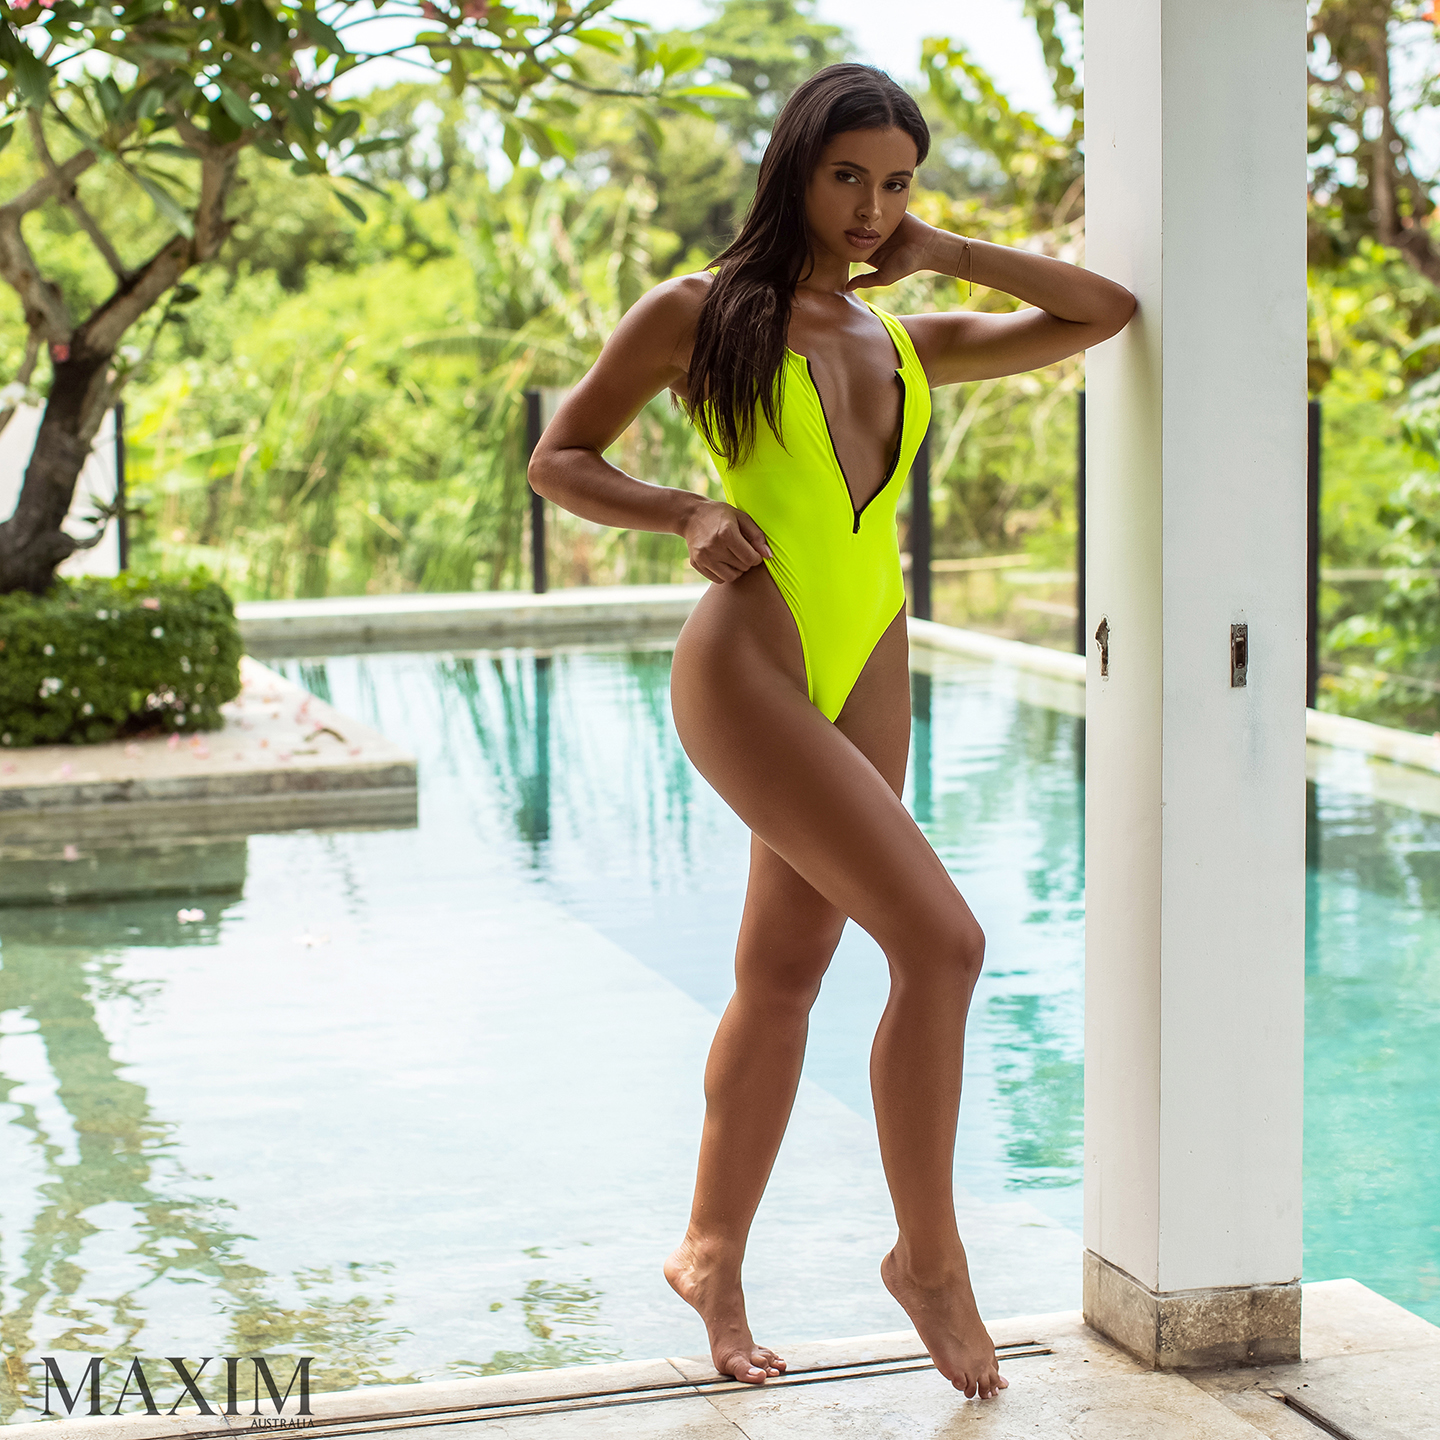 MAXIM-Australia-Ashley-Arre-18